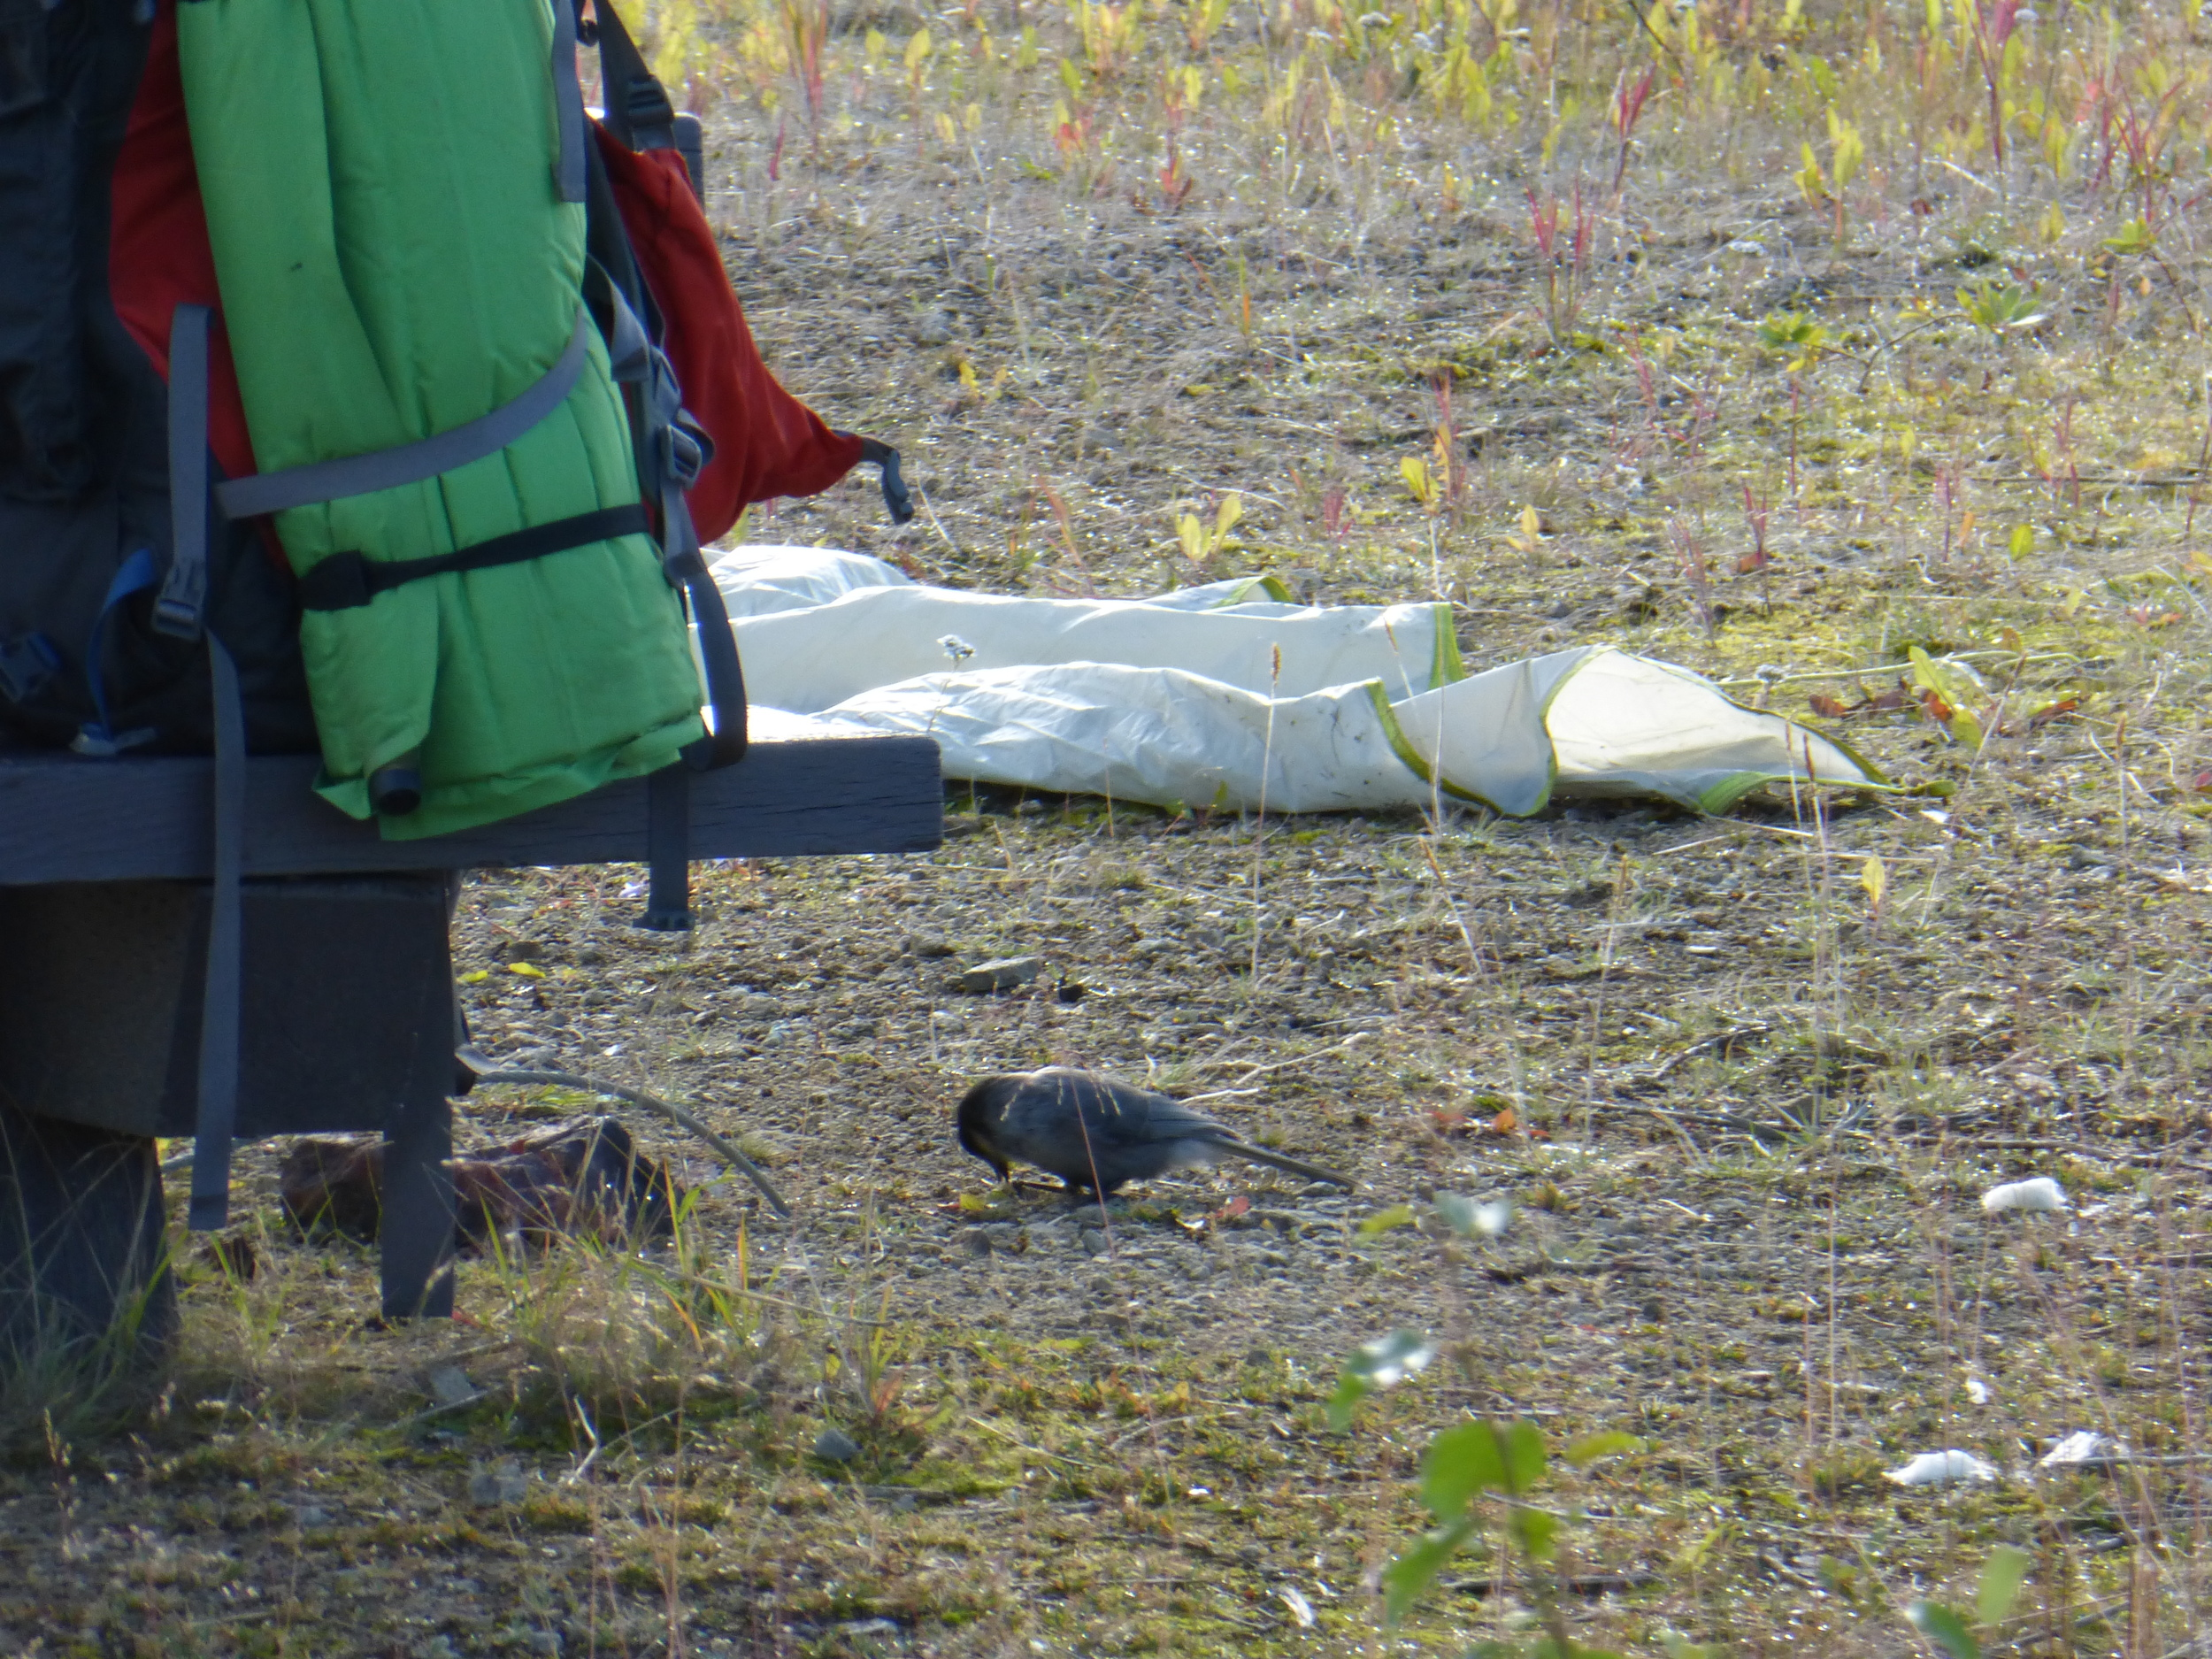 Grayjays were robbing me of my M&M's after taking down my tent I came back to see them drilling holes in my trail mix bag!